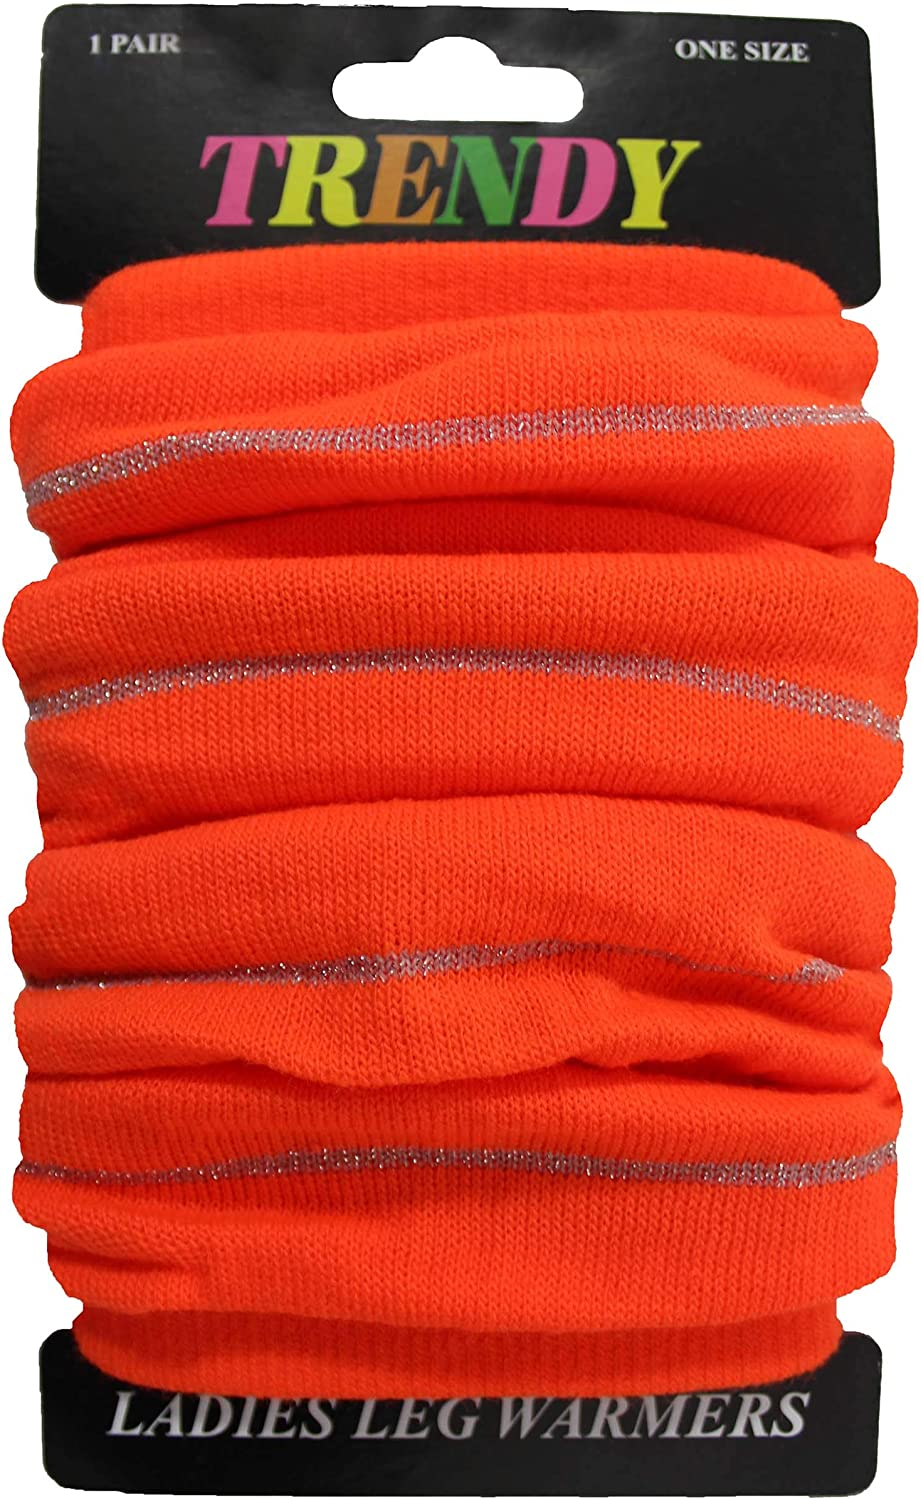 Ladies Womens Bright Orange Neon Leg Warmers With Silver Lines 80s Fancy Party Dance Legwarmer One Size